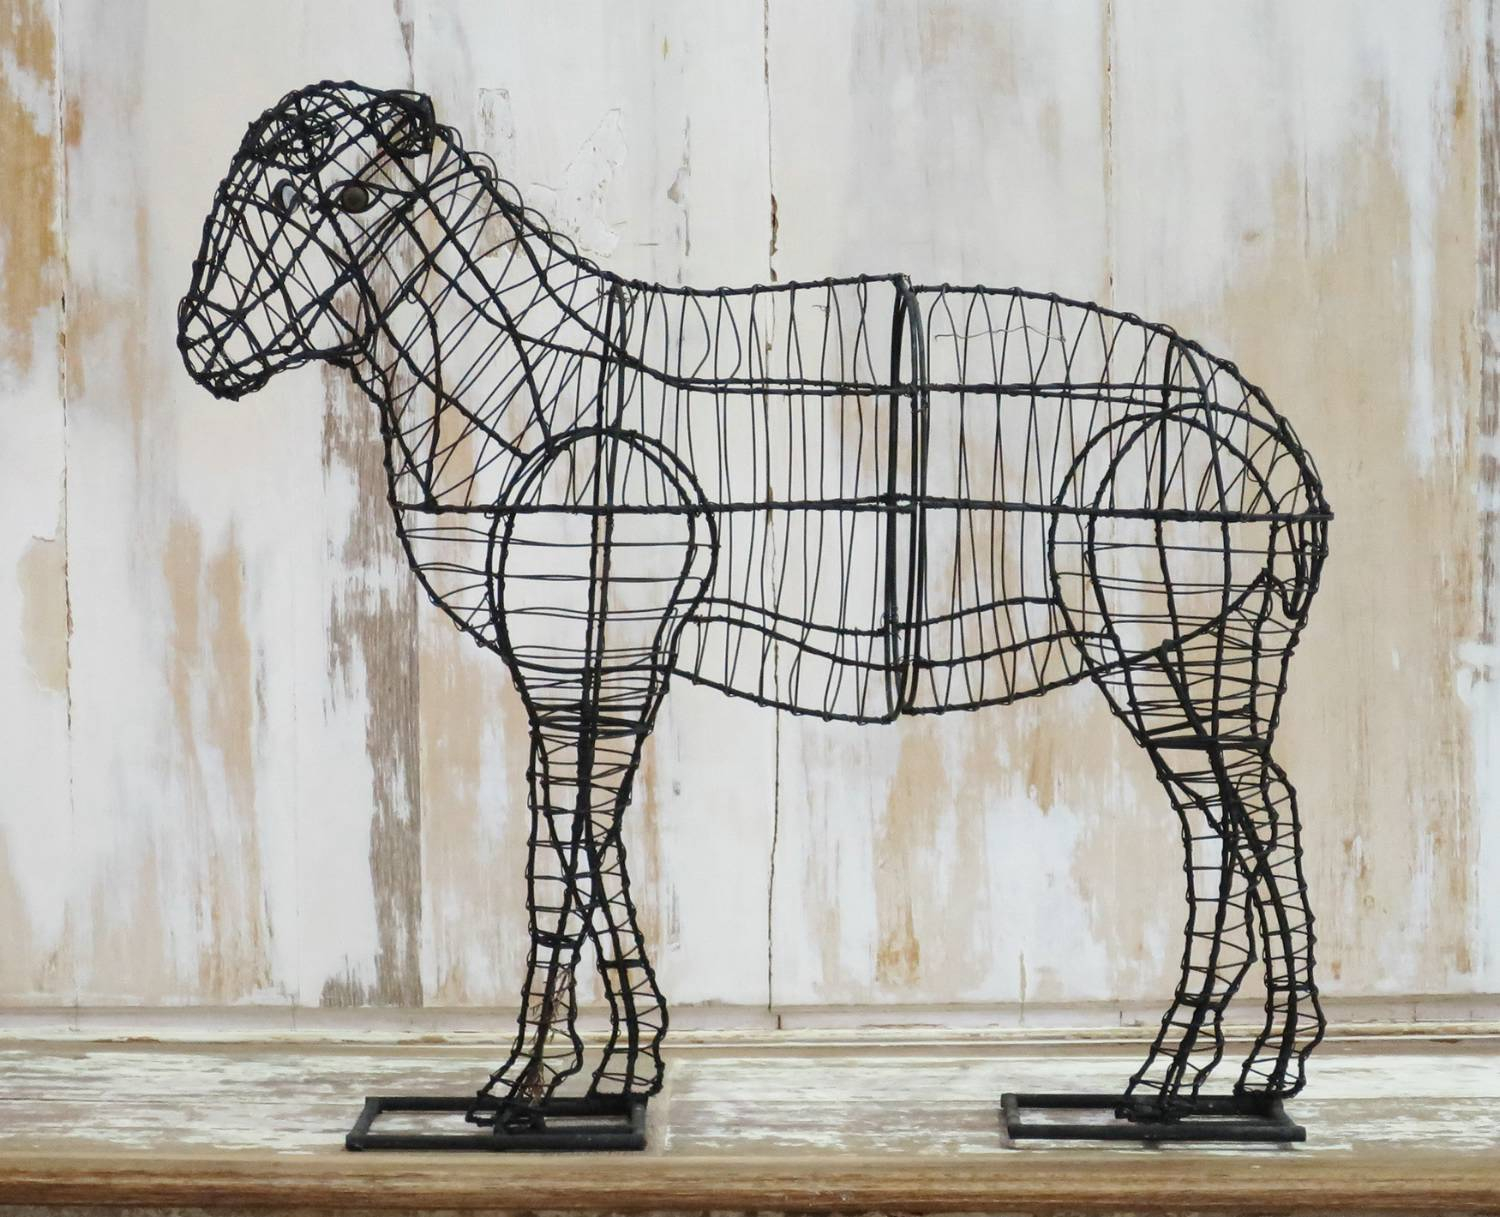 Wire Frame for Topiary in the form of a Sheep